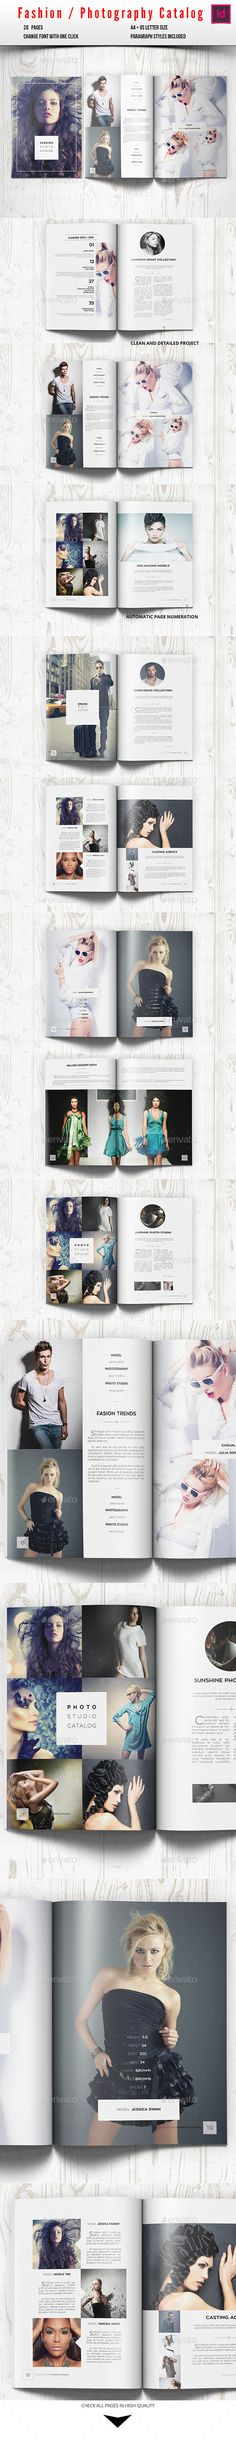 Fashion Photography Catalog / Brochure Template #design Download: http://graphicriver.net/item/fashion-photography-catalog-brochure/10277338?ref=ksioks